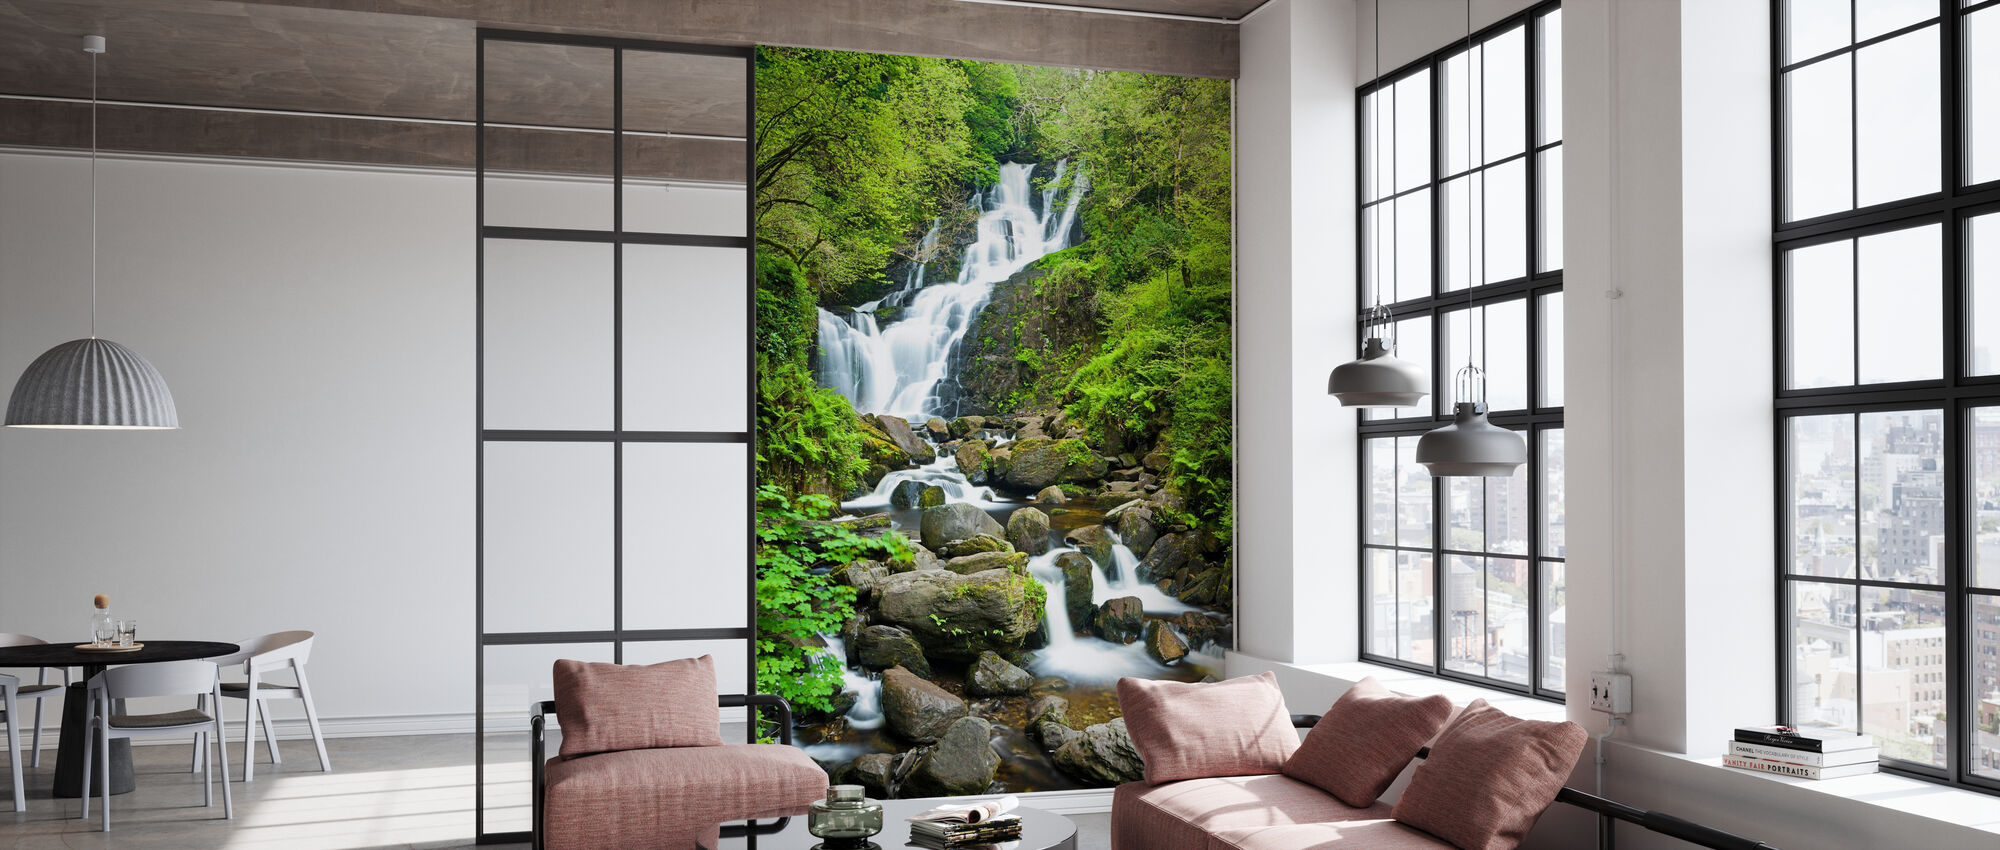 Torc Waterfall - Wallpaper - Office